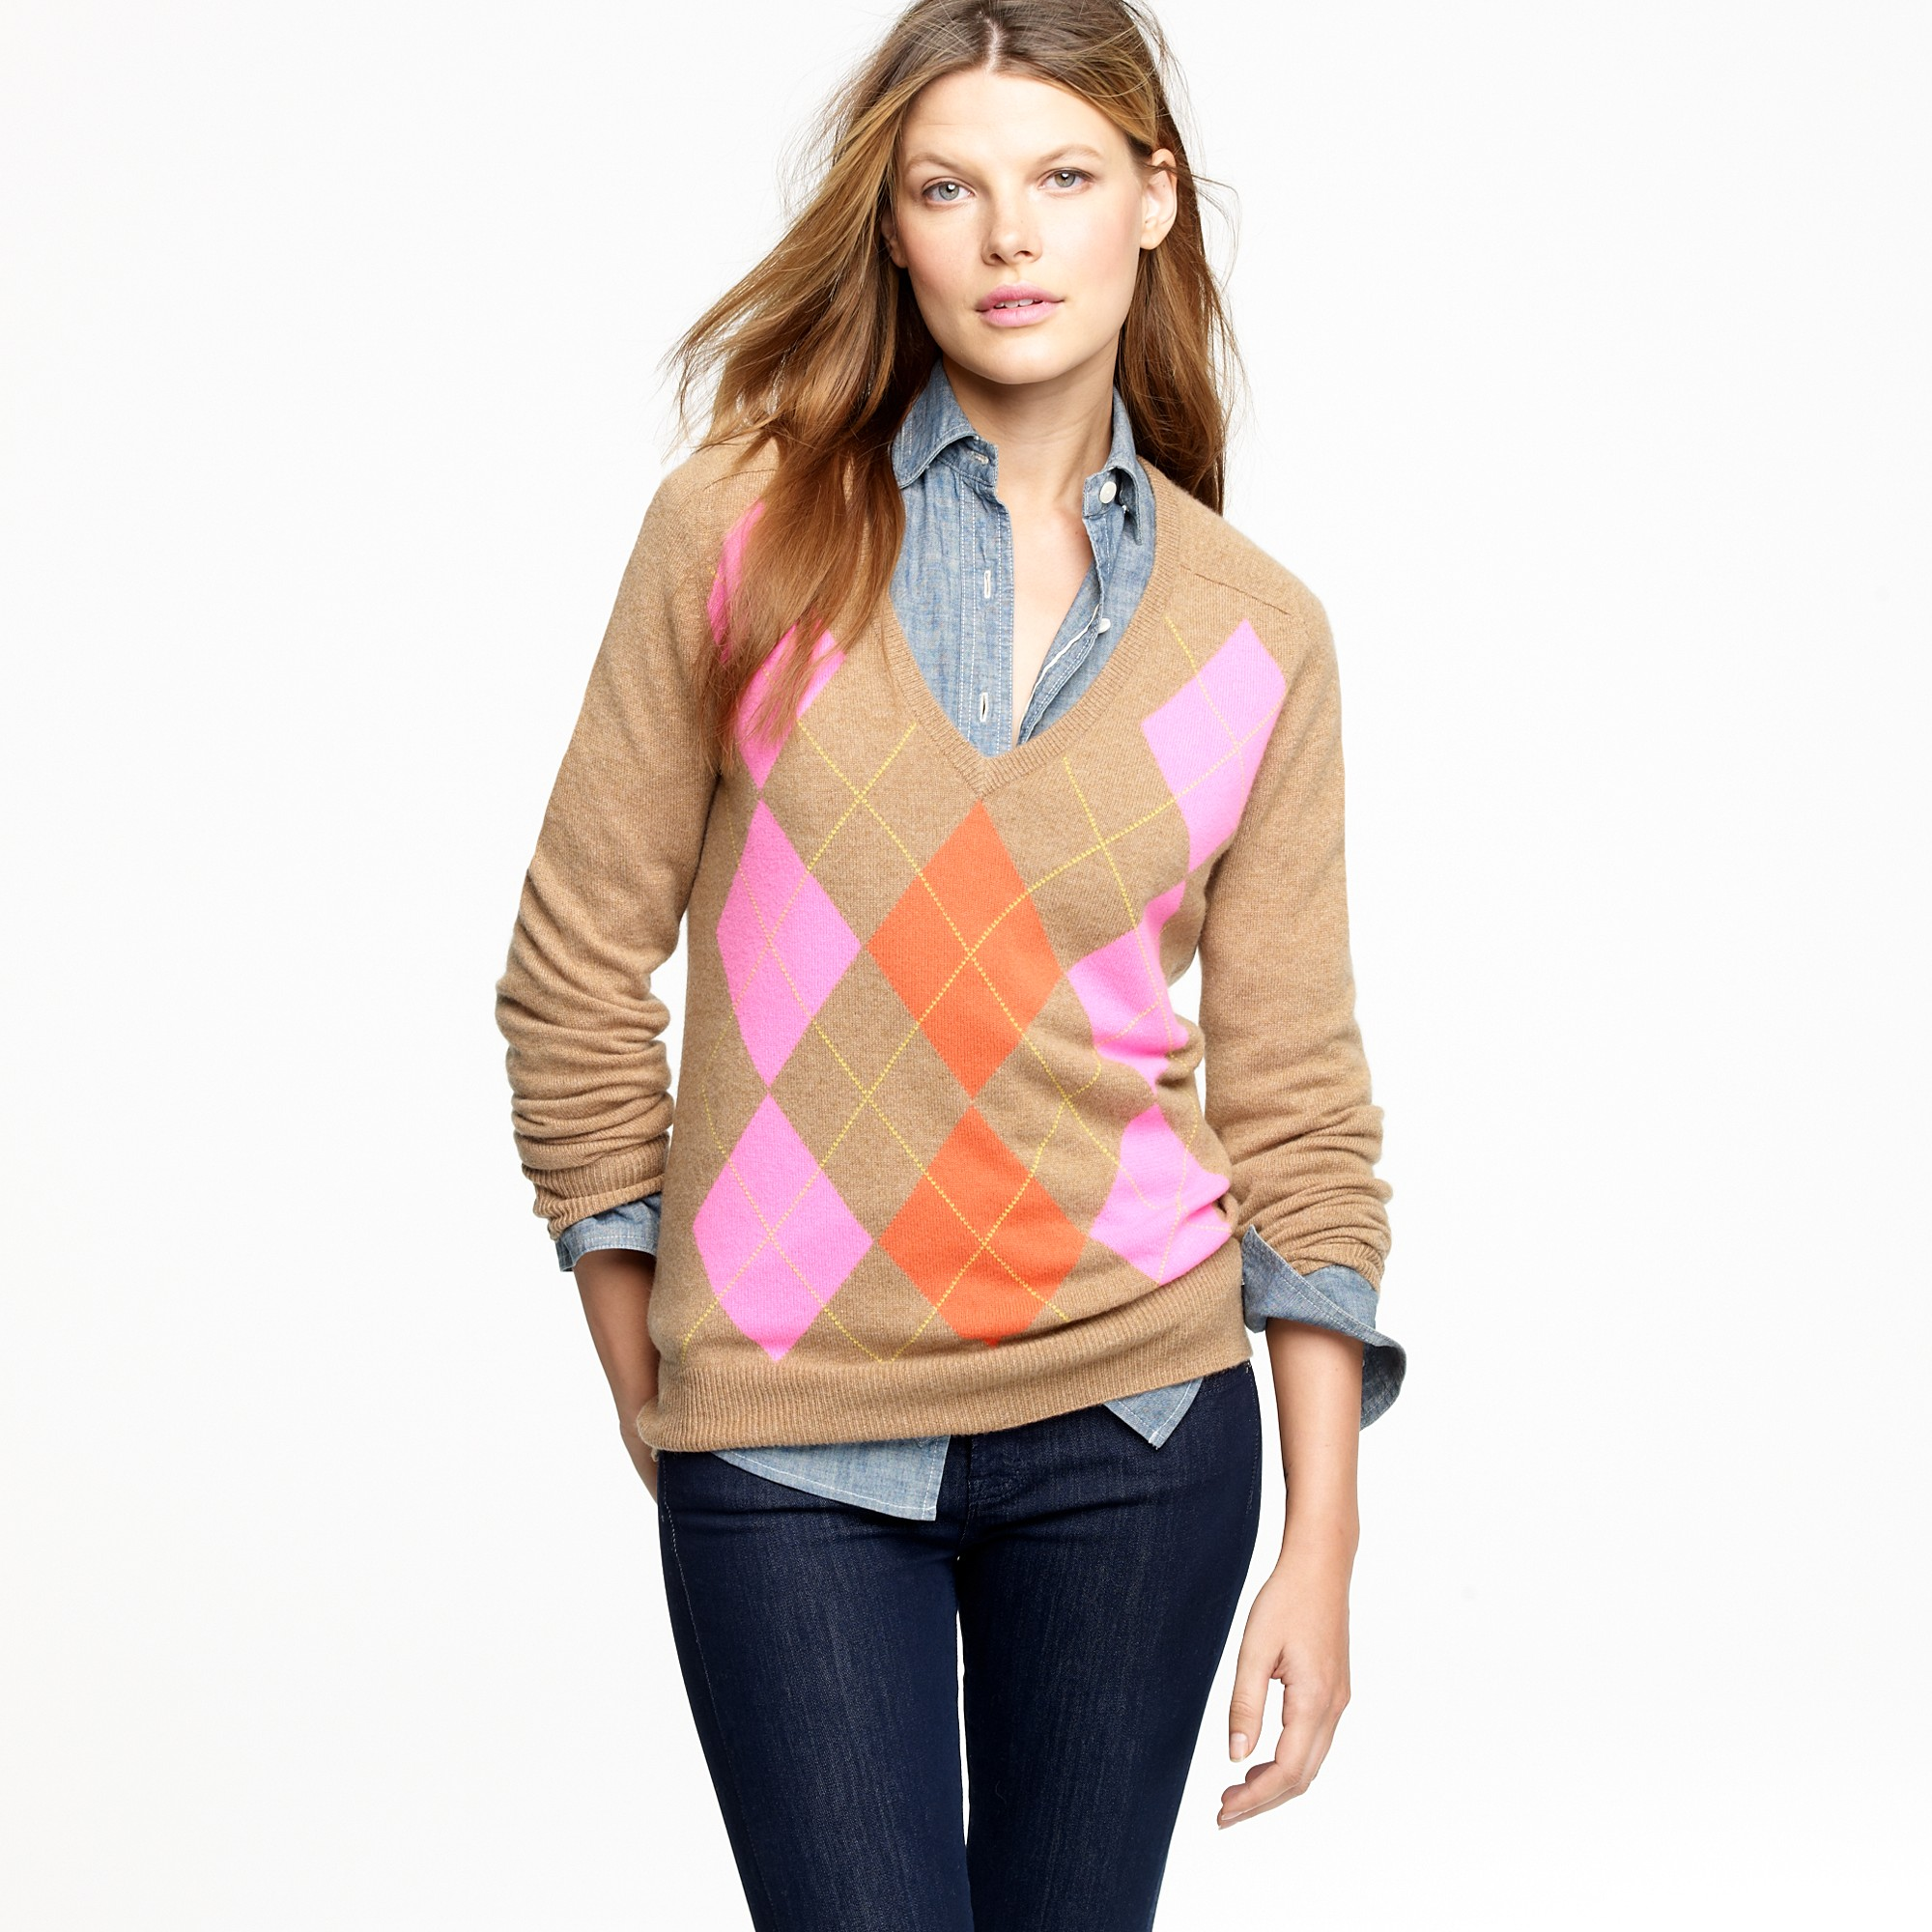 Argyle sweater vests are a sophisticated option in modern day American styling. Yet when paired with subtle pieces, an argyle vest for women or men can still .